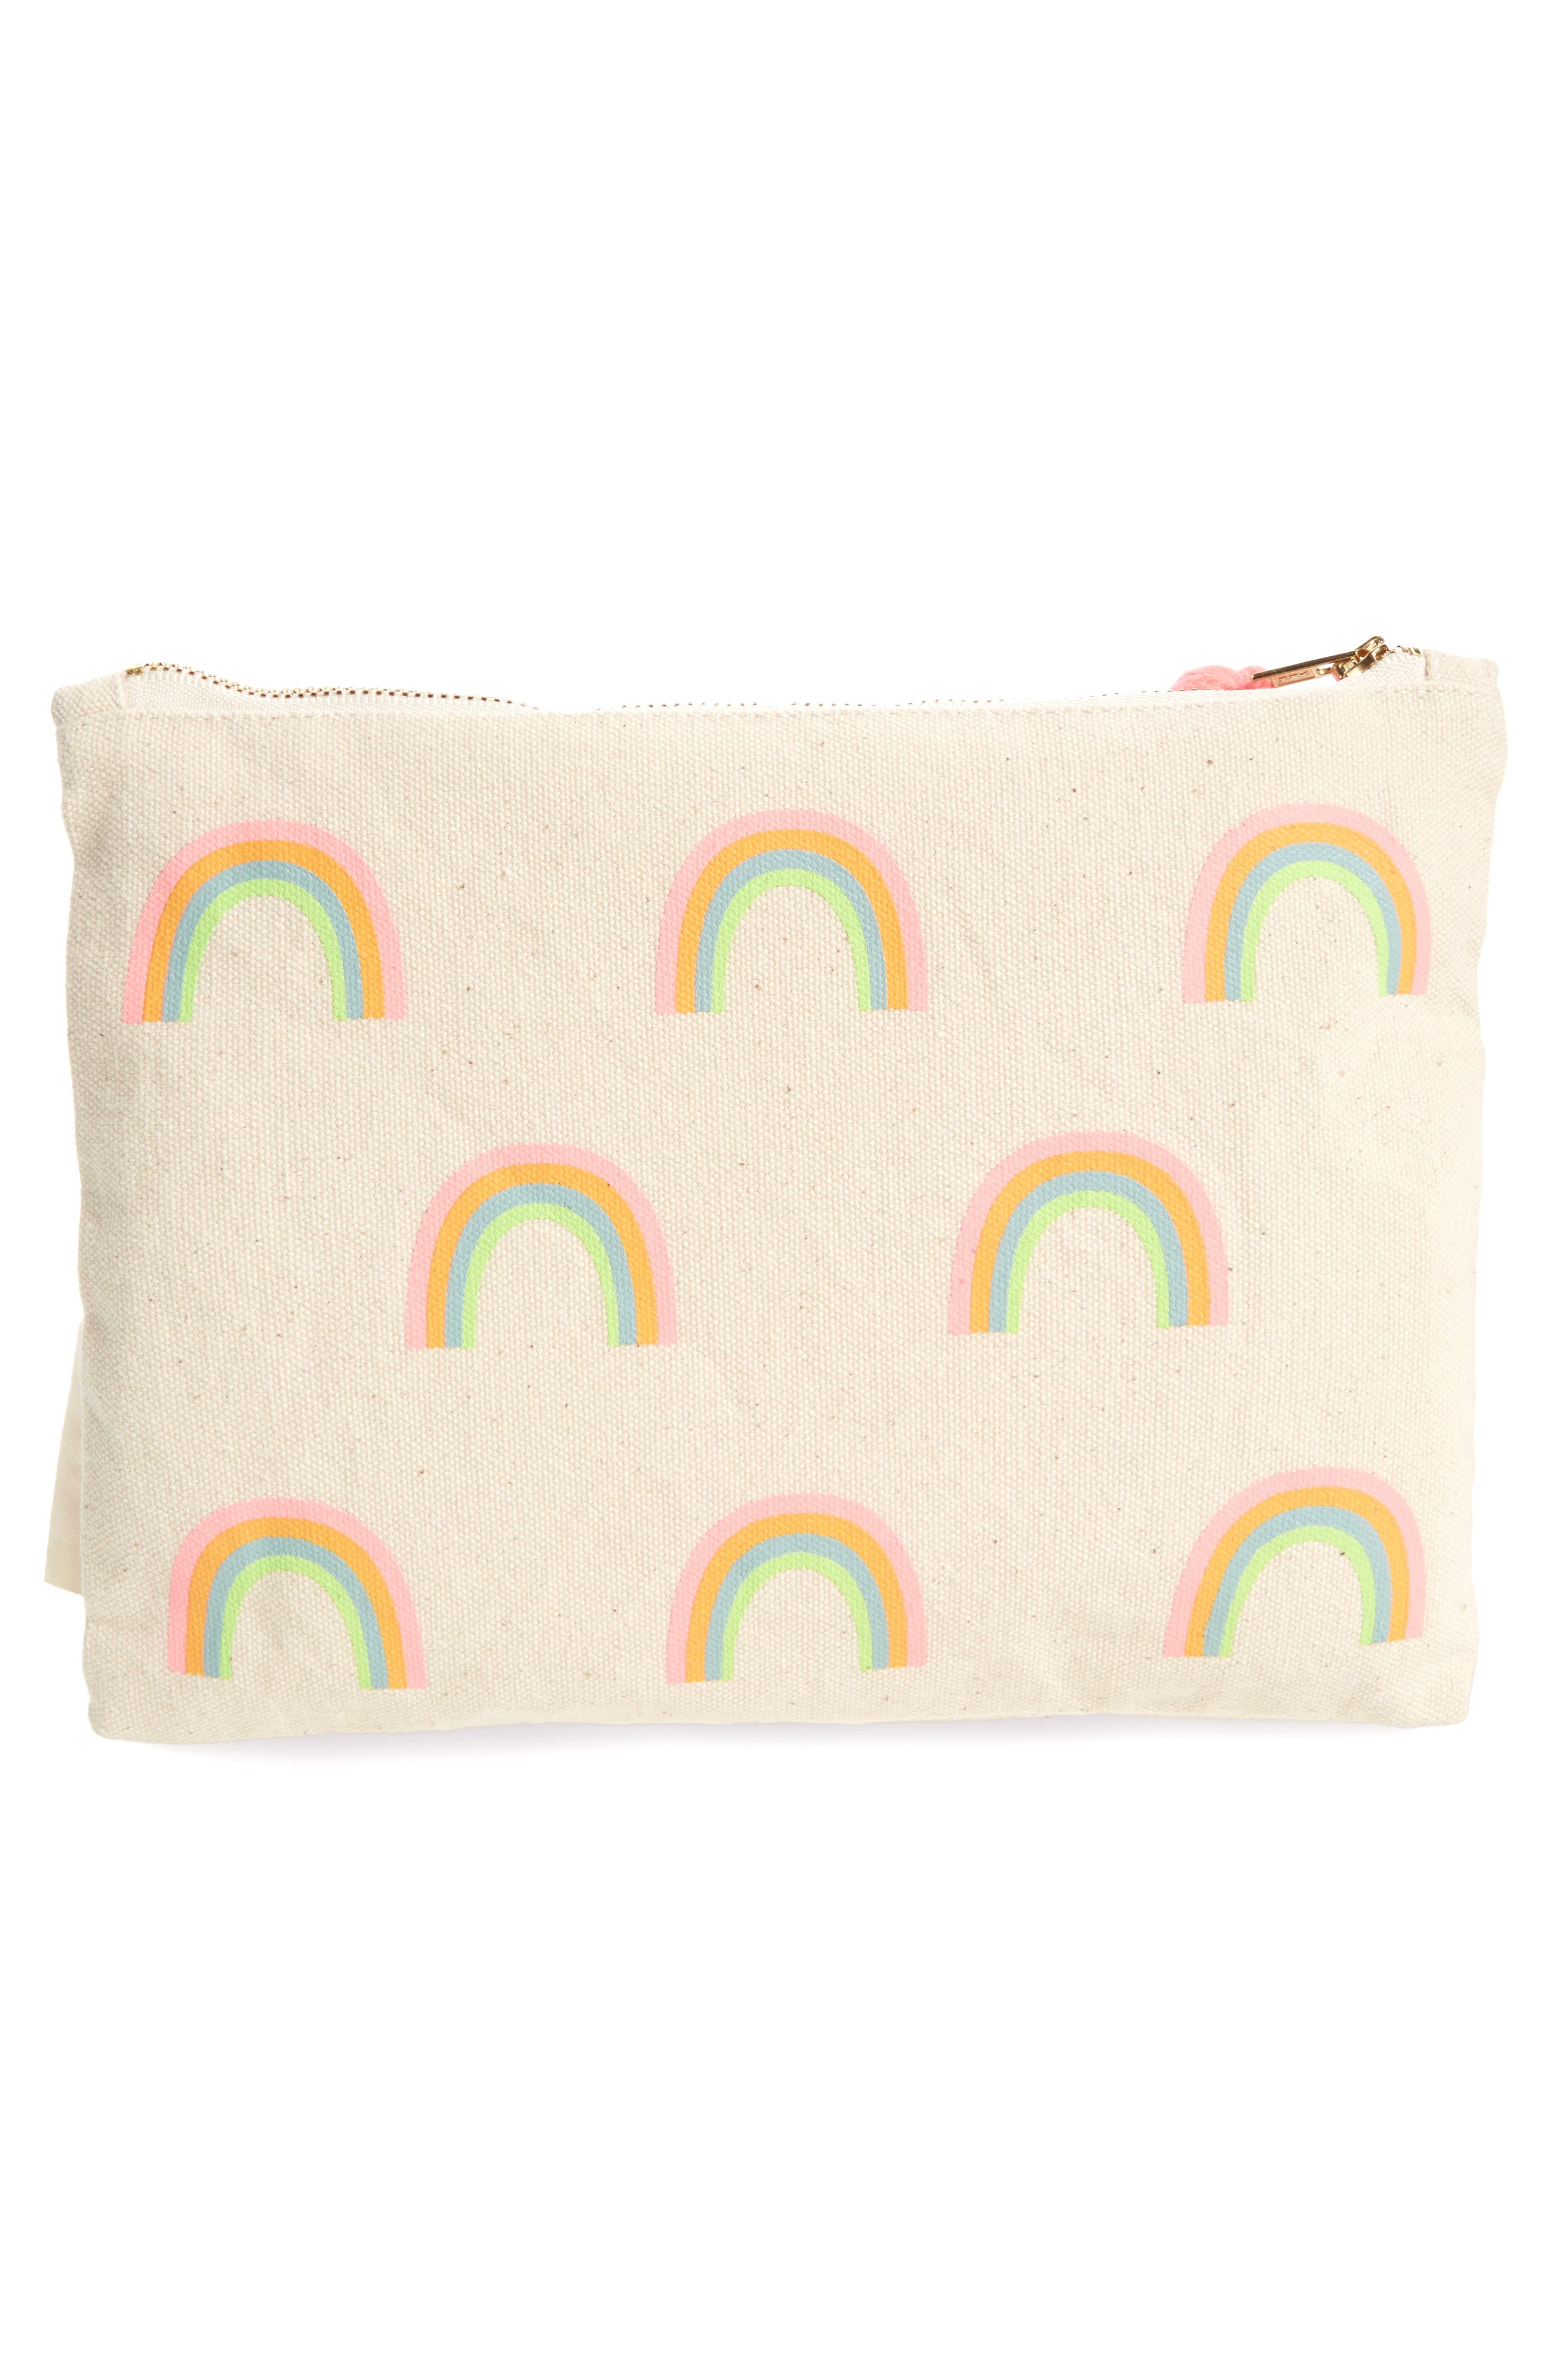 Large Rainbow Zip Pouch,                             Alternate thumbnail 2, color,                             900